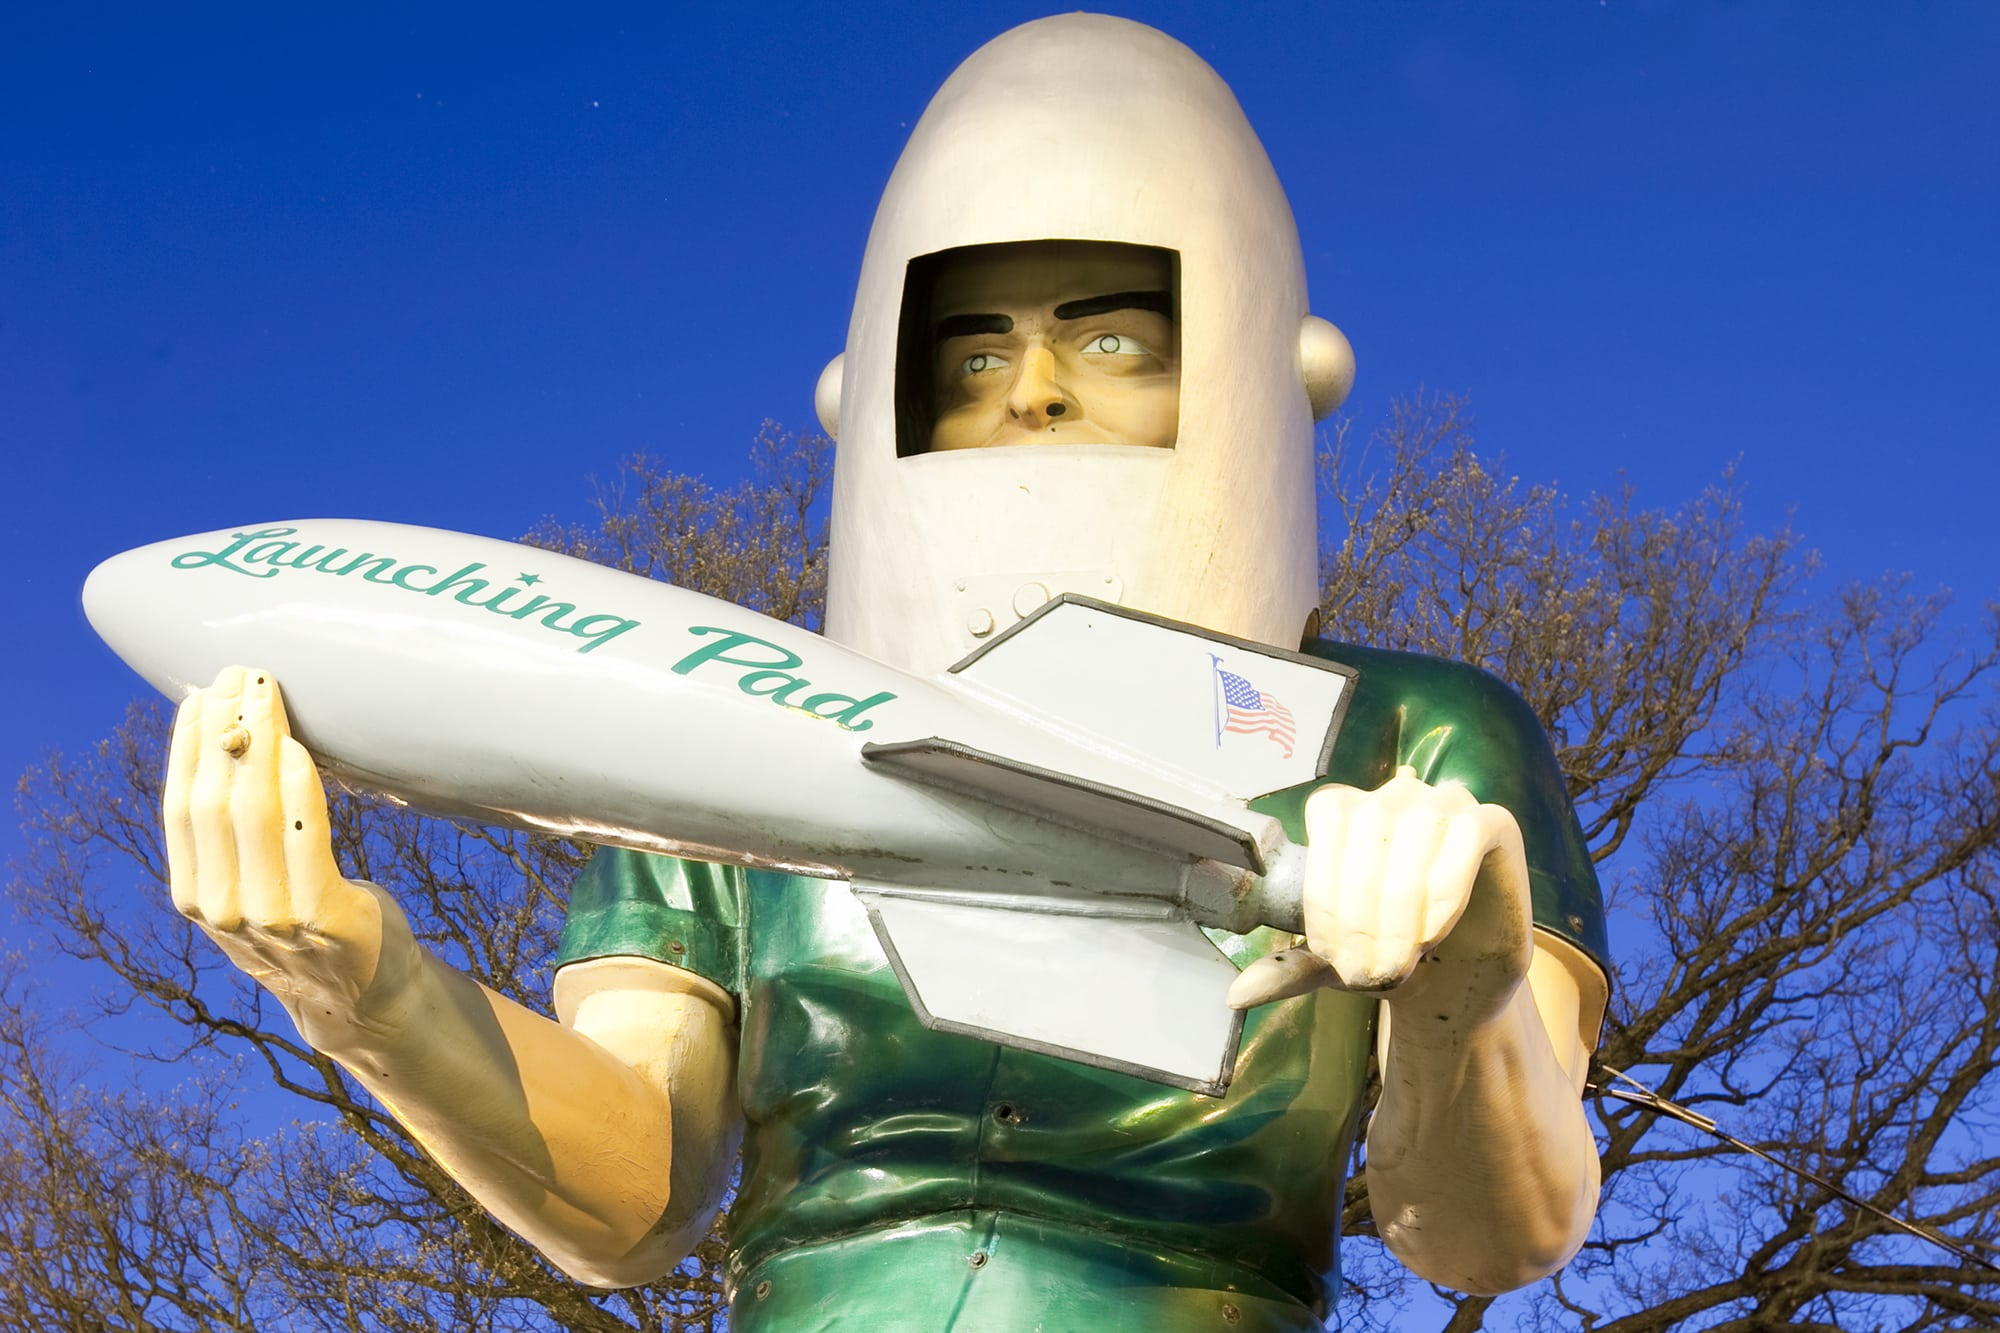 Location Lighting Assignment: Lighting roadside attractions on a road trip - Gemini Giant at Launching Pad Drive-In